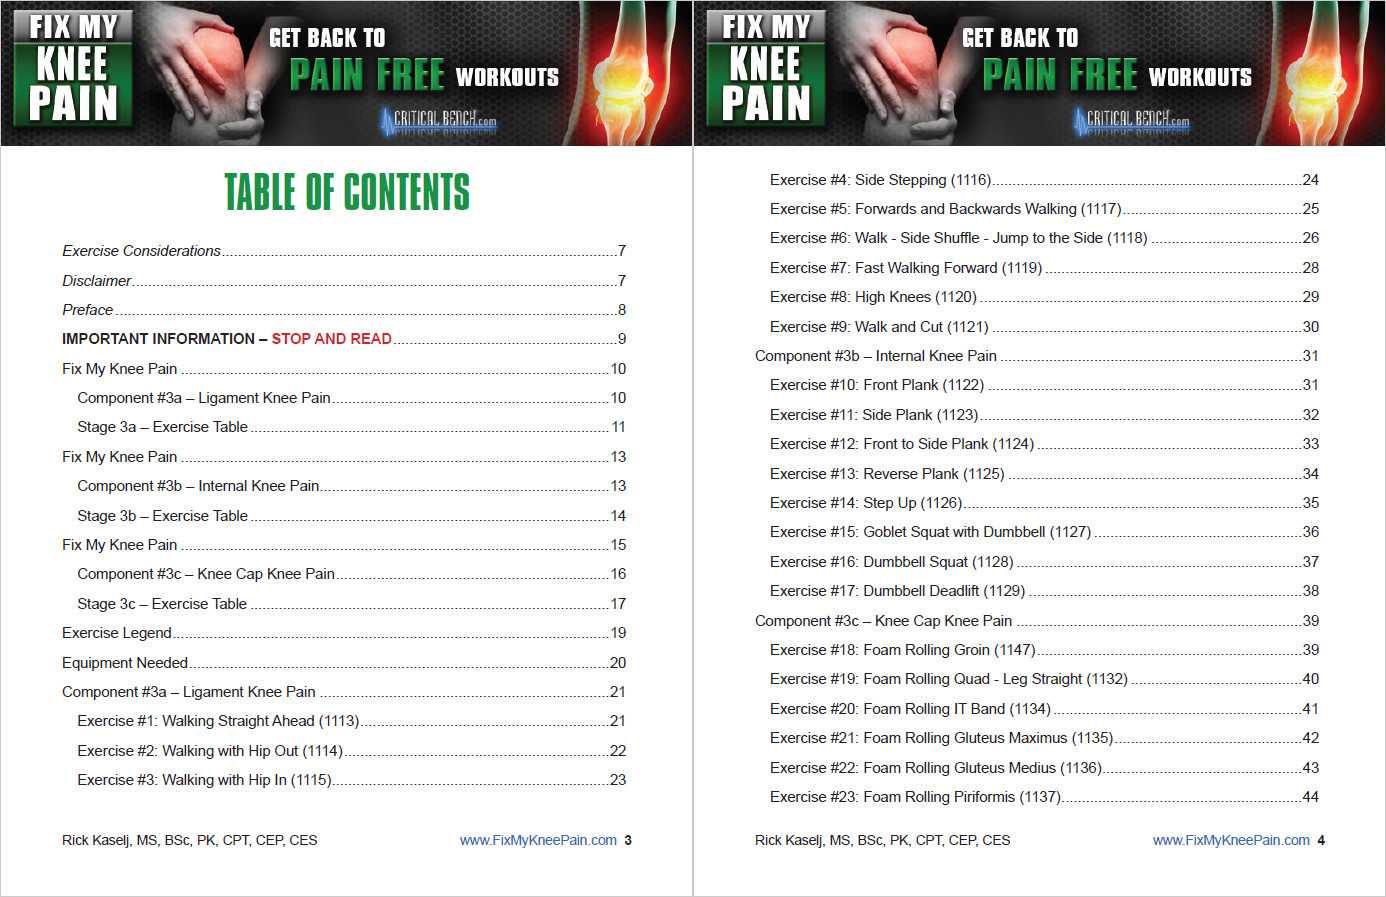 Fix My Knee Pain Table of Contents